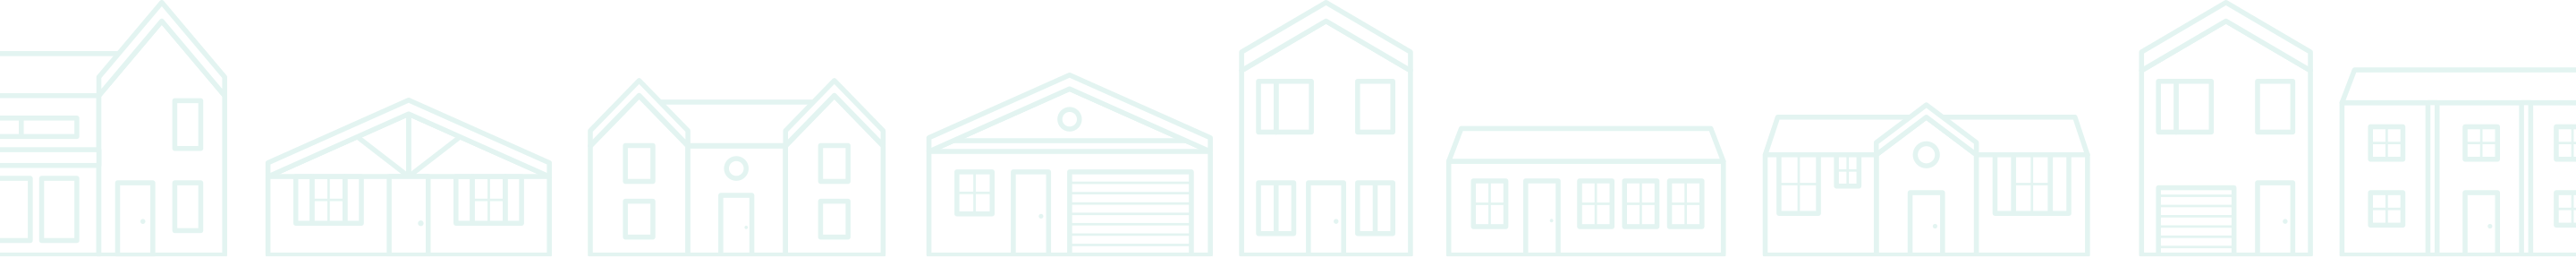 illustration of the front exteriors of different homes